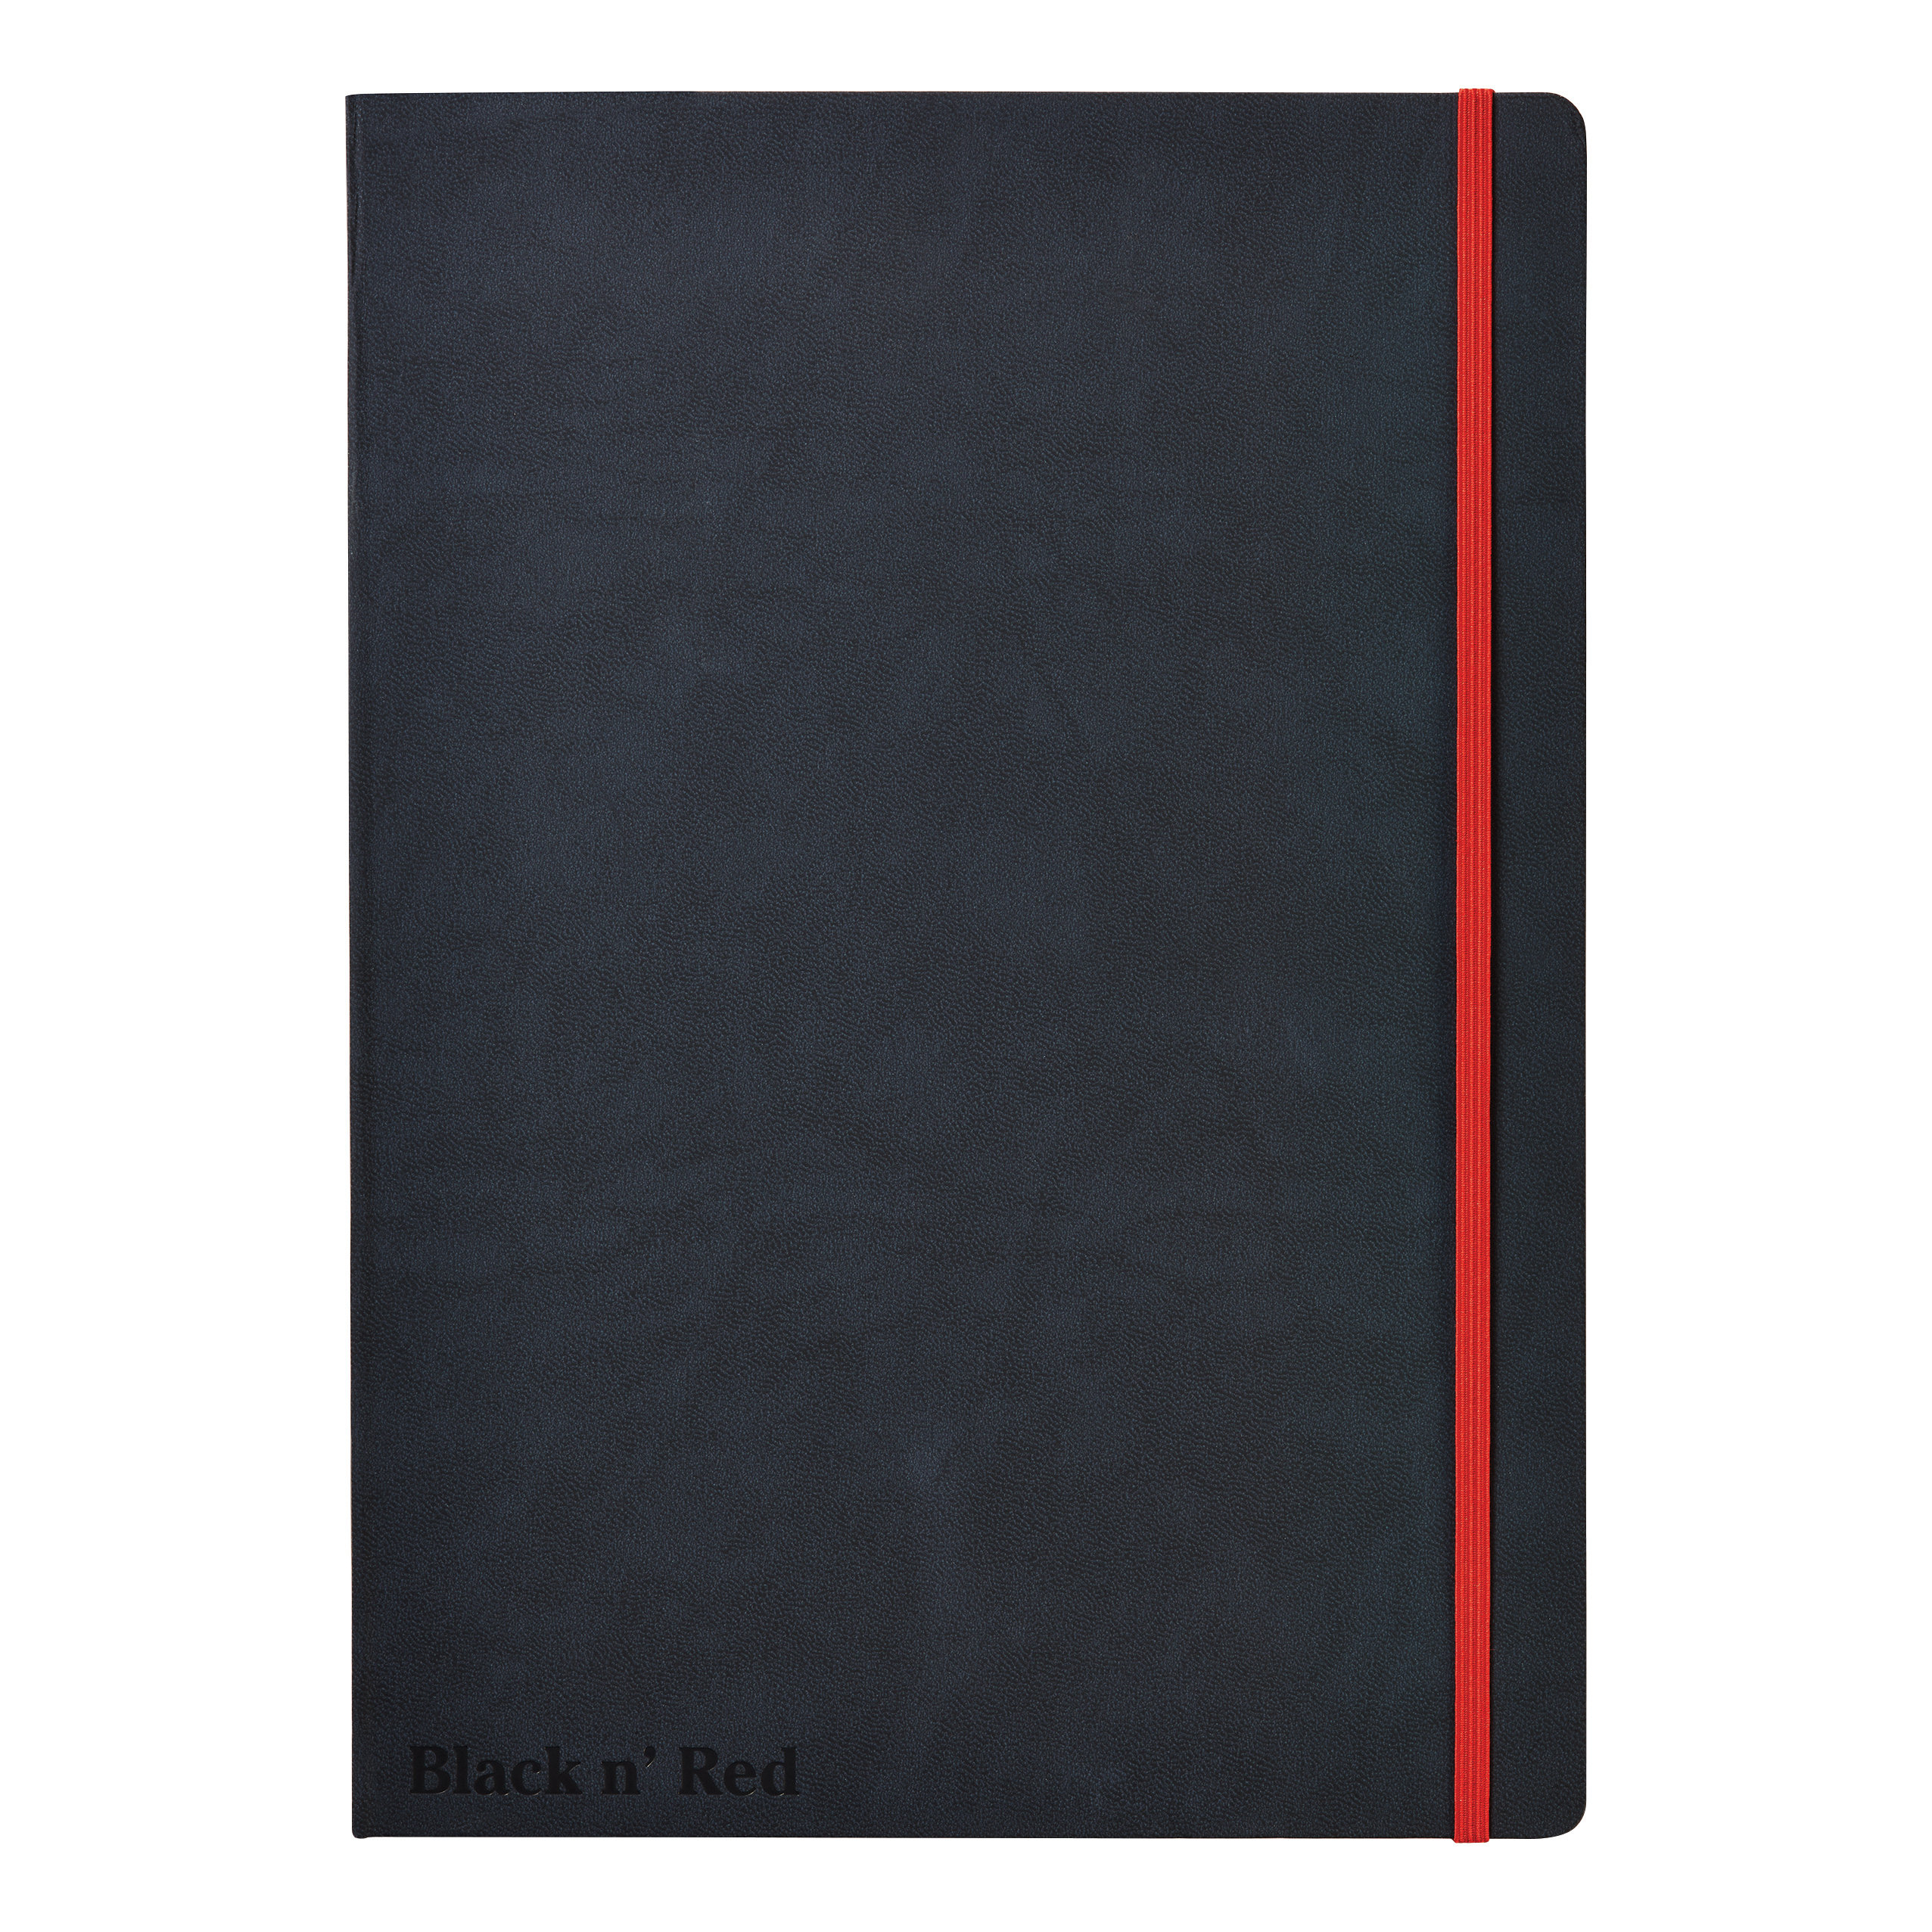 Black By Black n Red Casebound Notebook 90gsm Ruled and Numbered 144pp A4 Ref 400038675